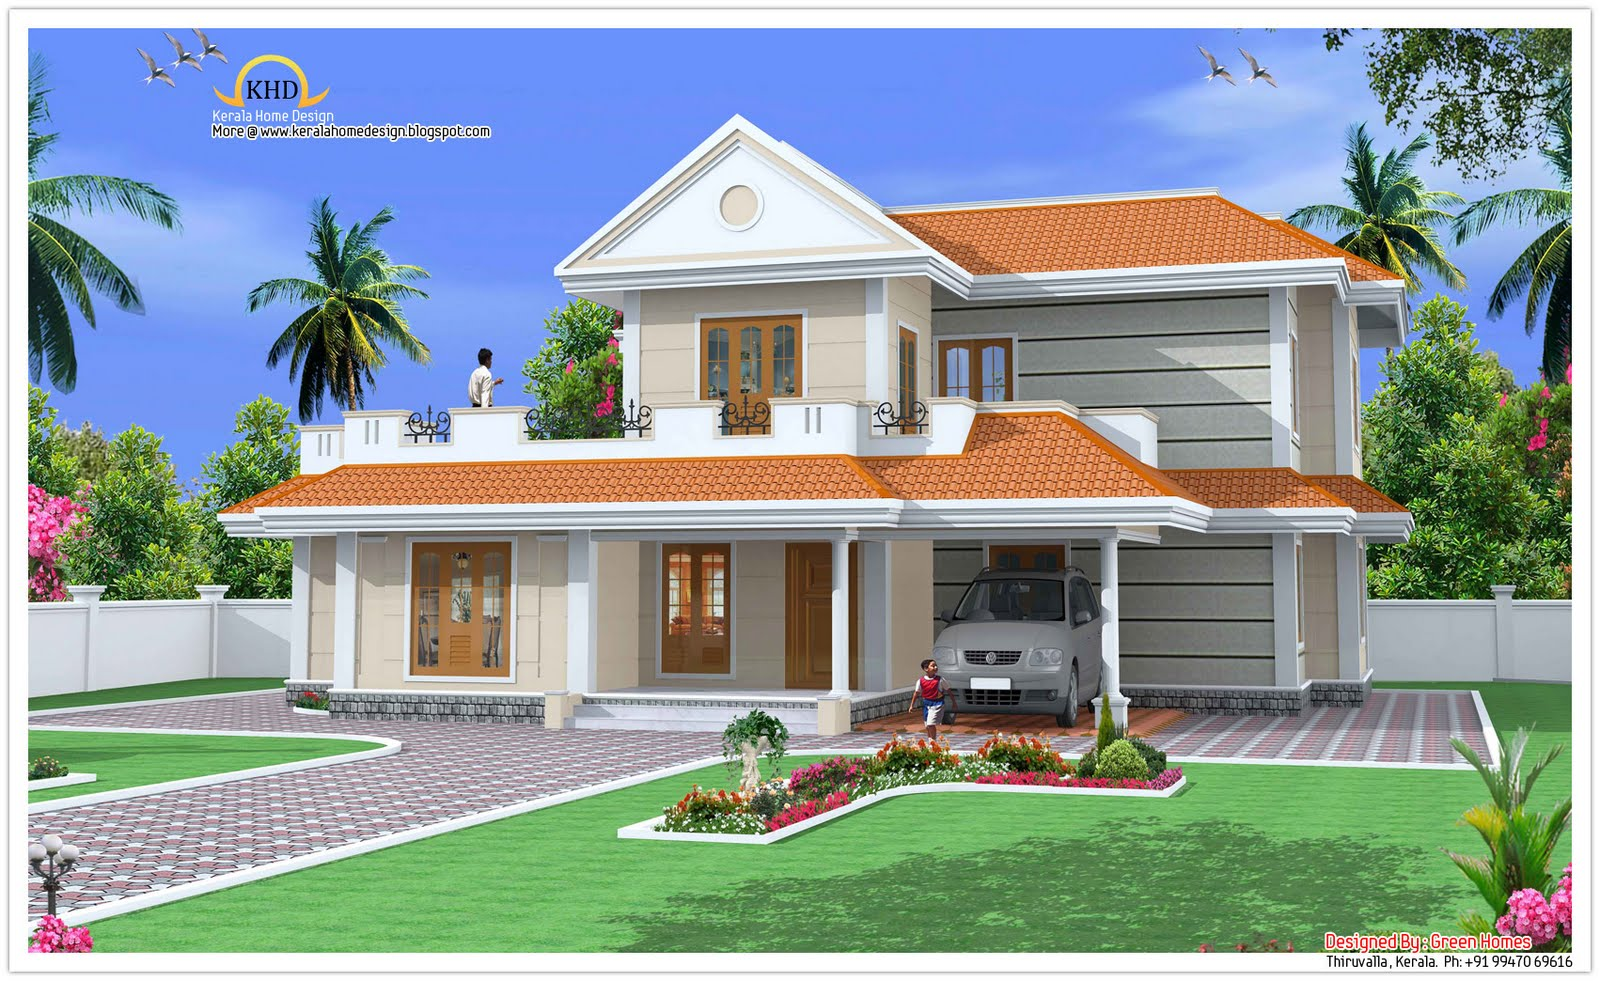 Stunning Small House Elevation Design 1600 x 981 · 334 kB · jpeg